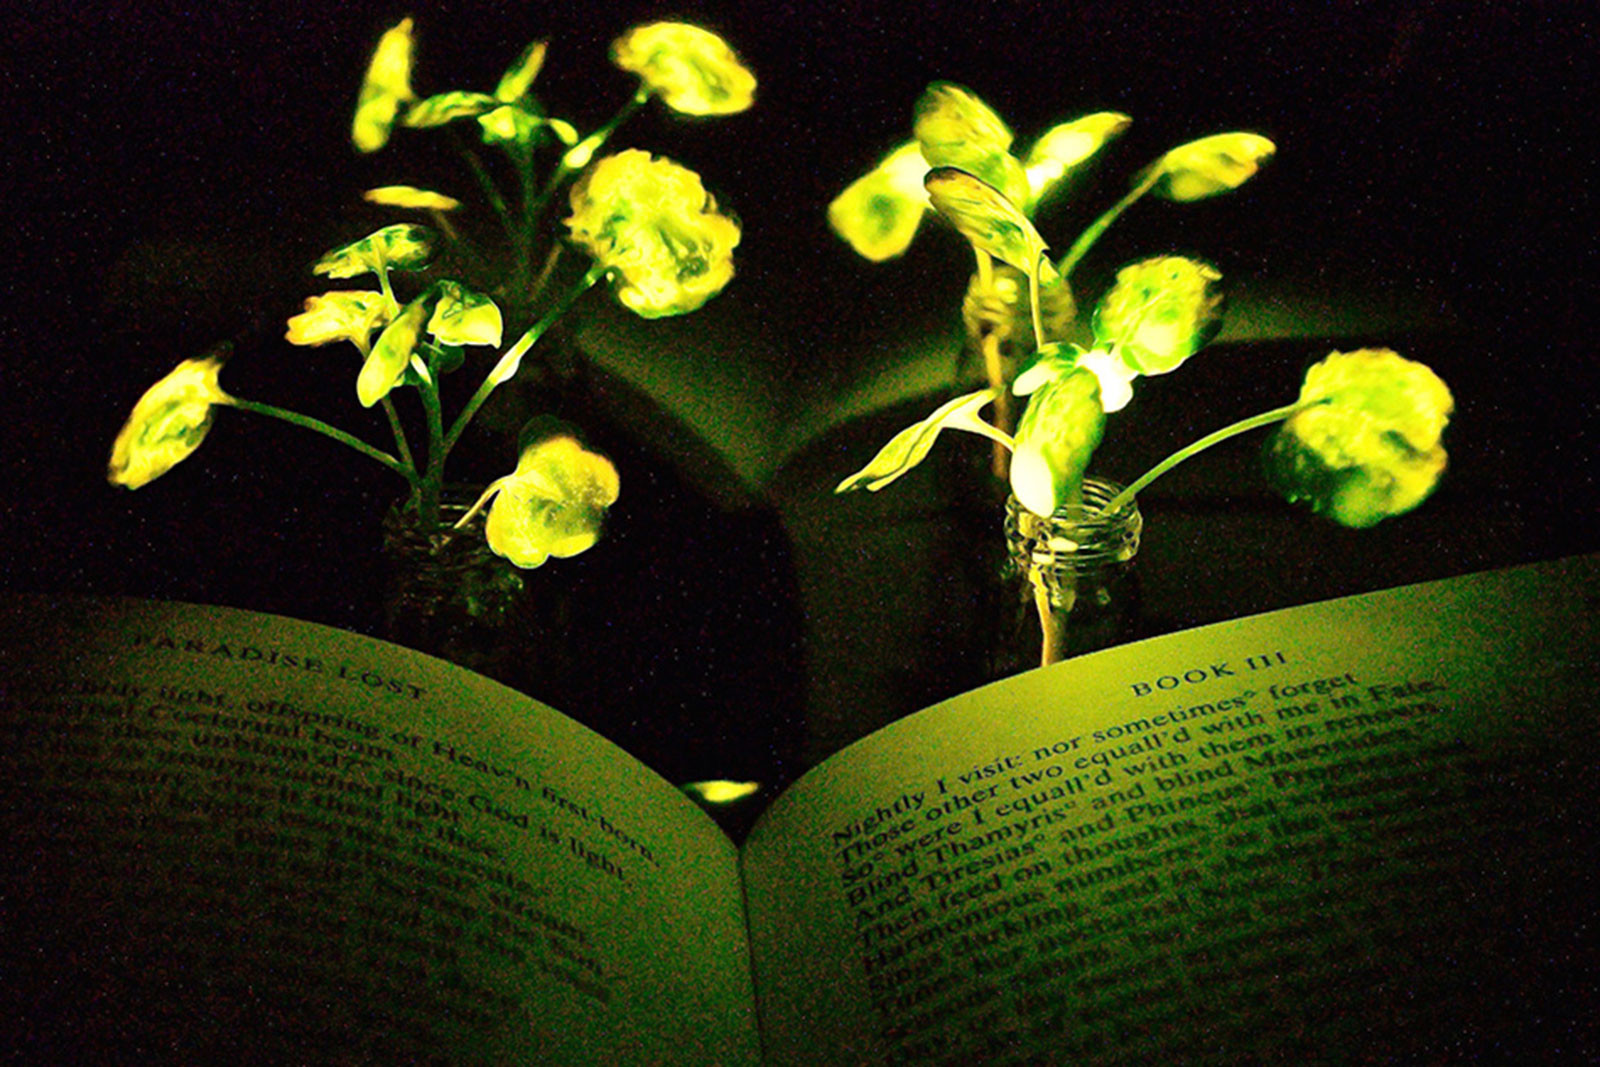 light bulb vase michaels of could glowing plants replace light bulbs cnn style in 180104134611 mit glowing plants